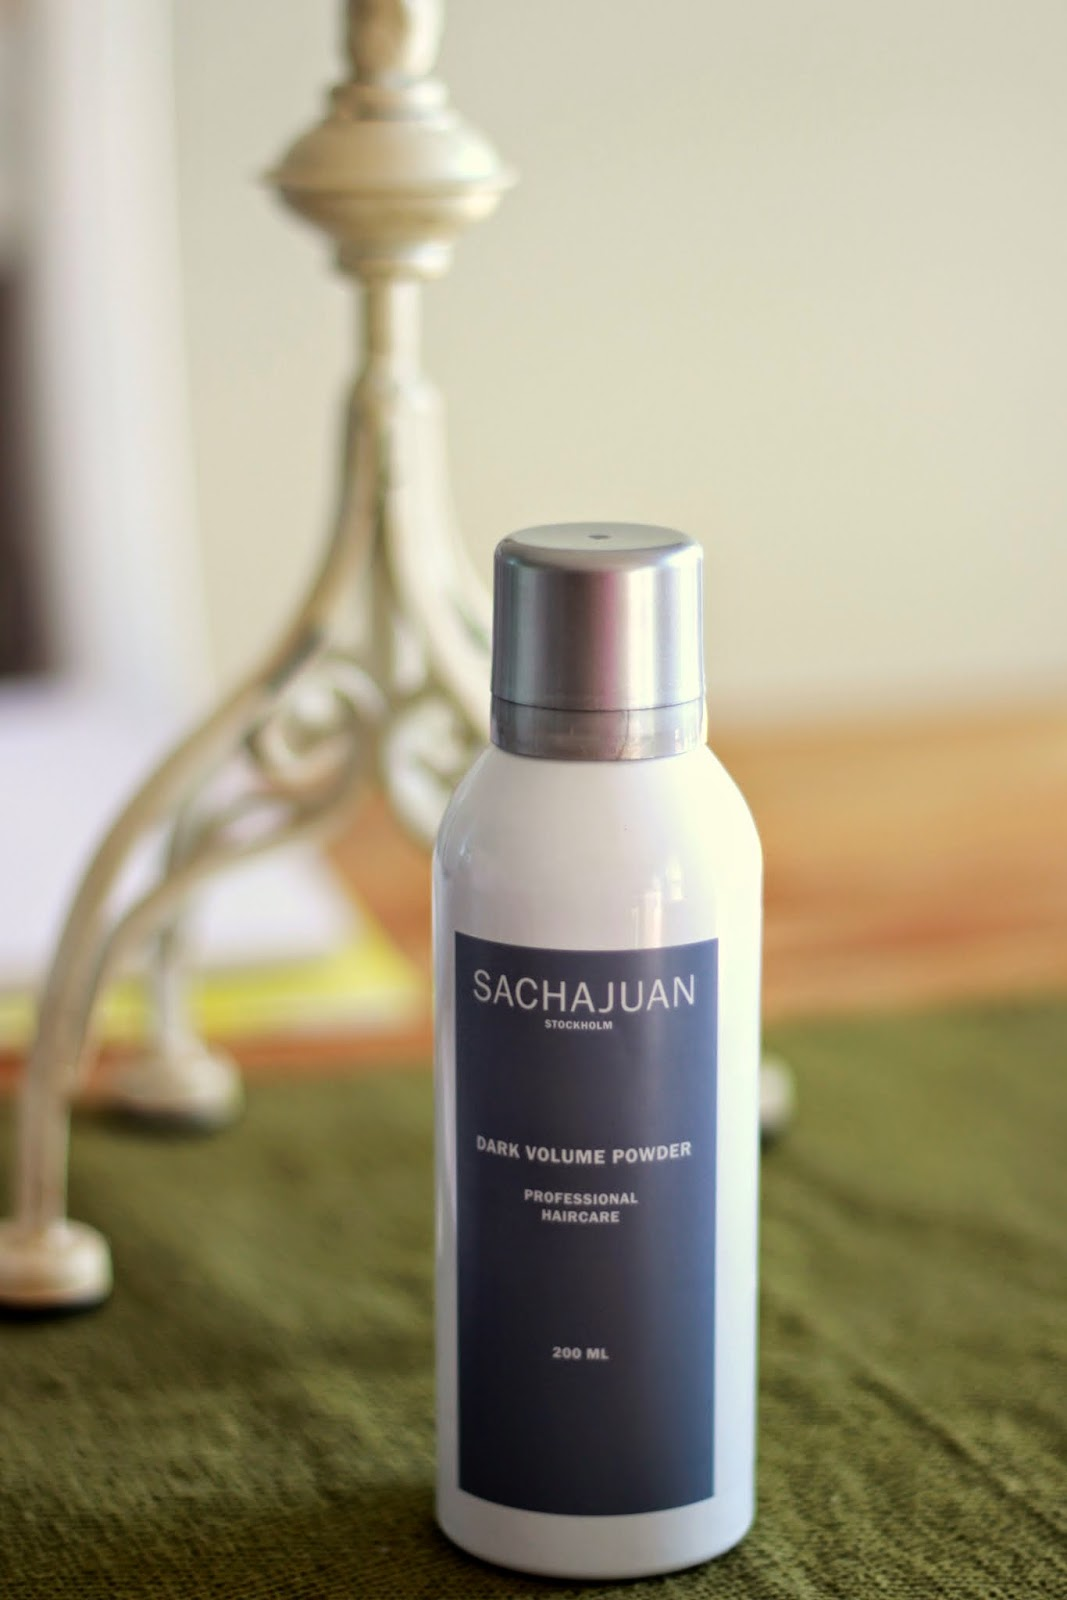 Sachajuan, Dry Shampoo, Dark Volume Powder, Hair Products